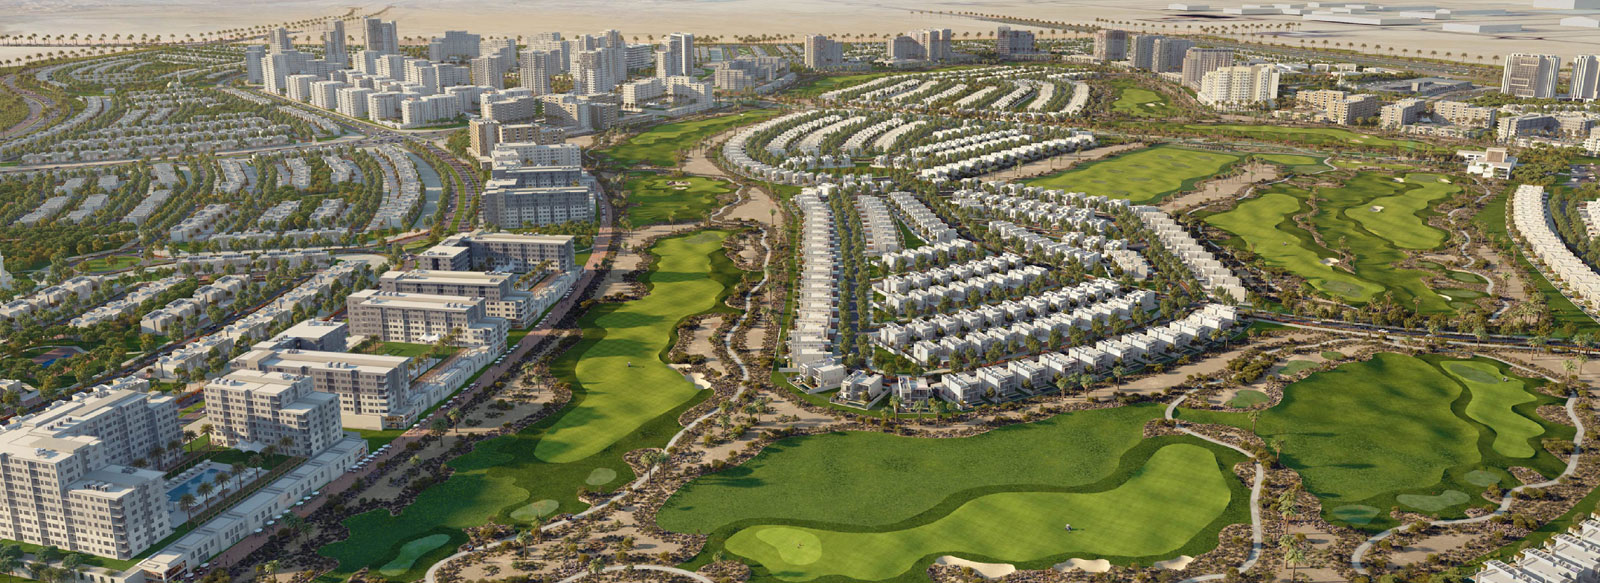 Exclusive Offers - Emaar South